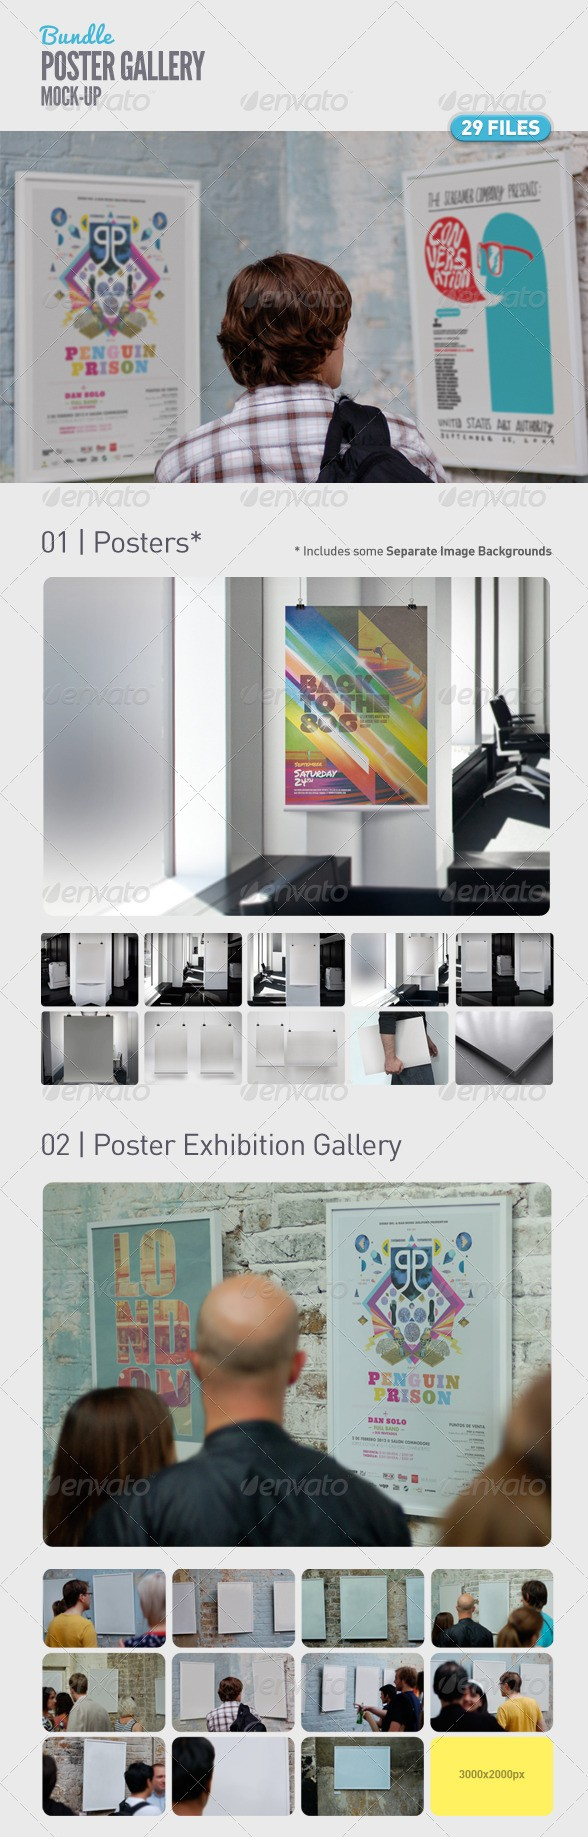 Poster Gallery Mock-Up Bundle